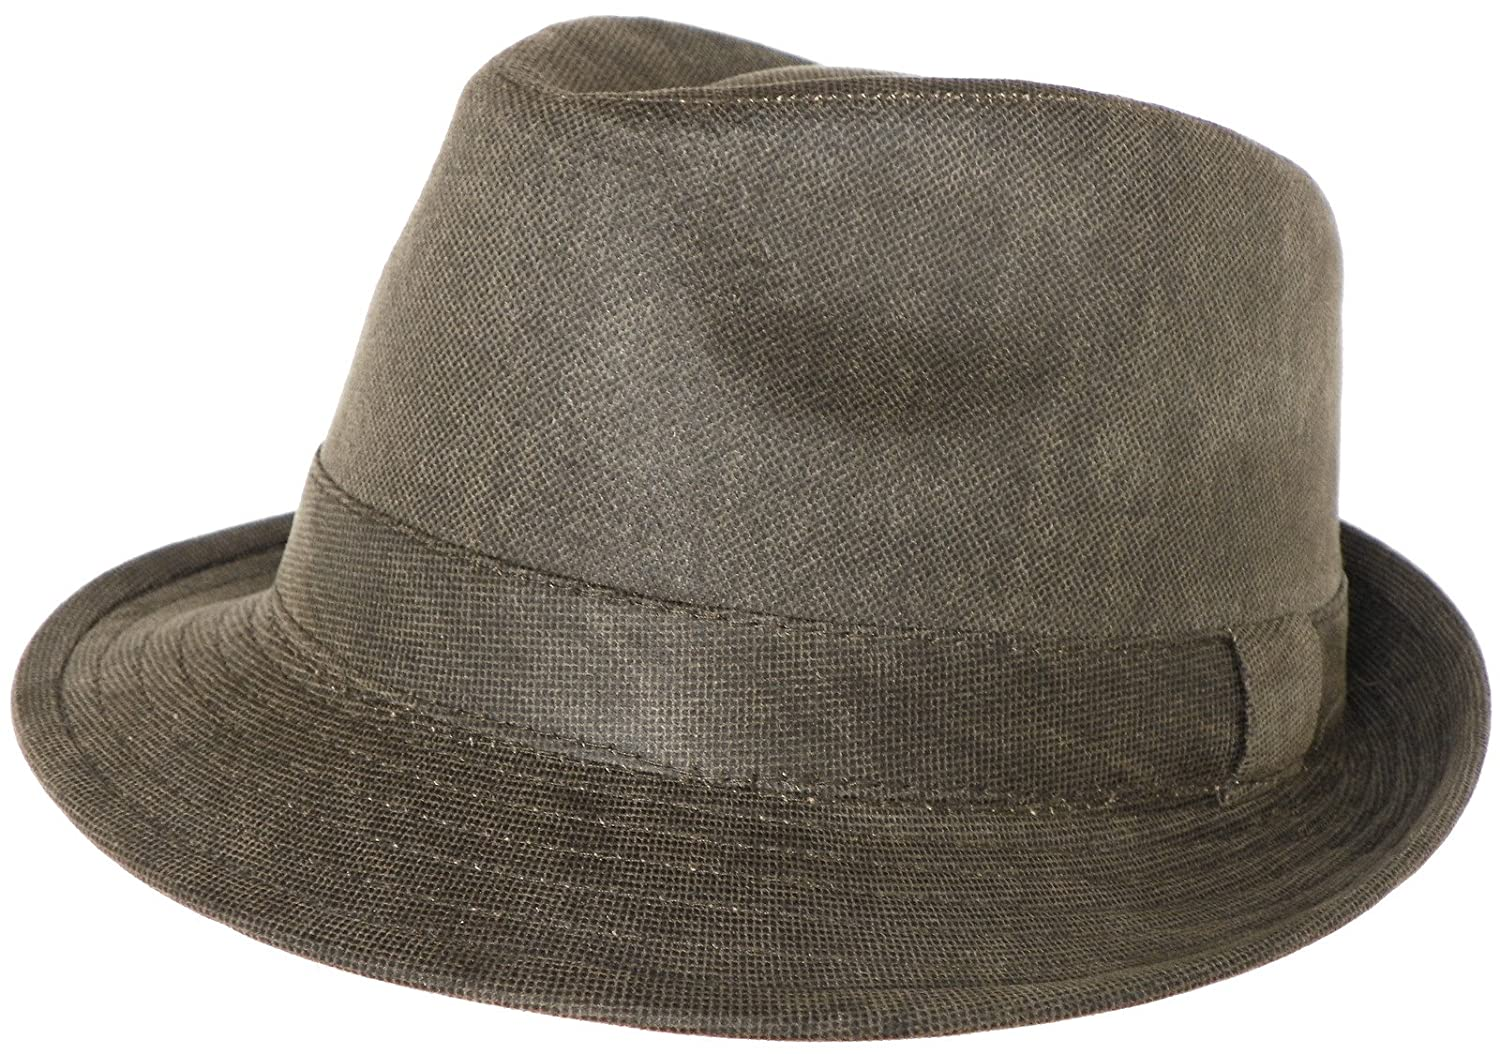 Henschel Stingy Brim Trilby Distressed Cotton Fedora Olive Green Hat